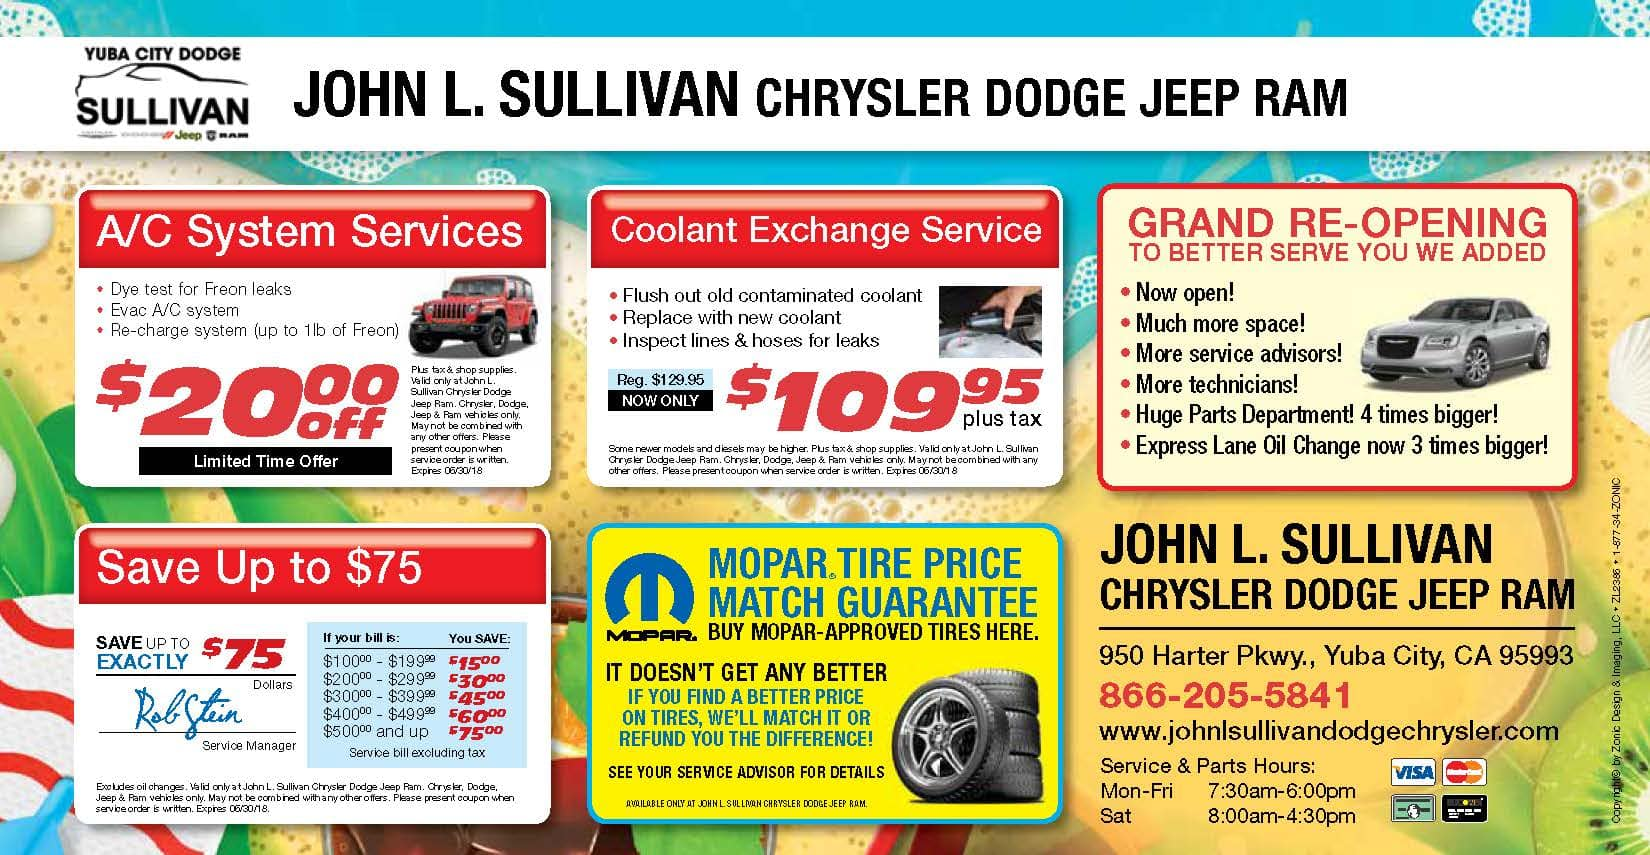 Yuba City Dodge Service Mailer - page 2